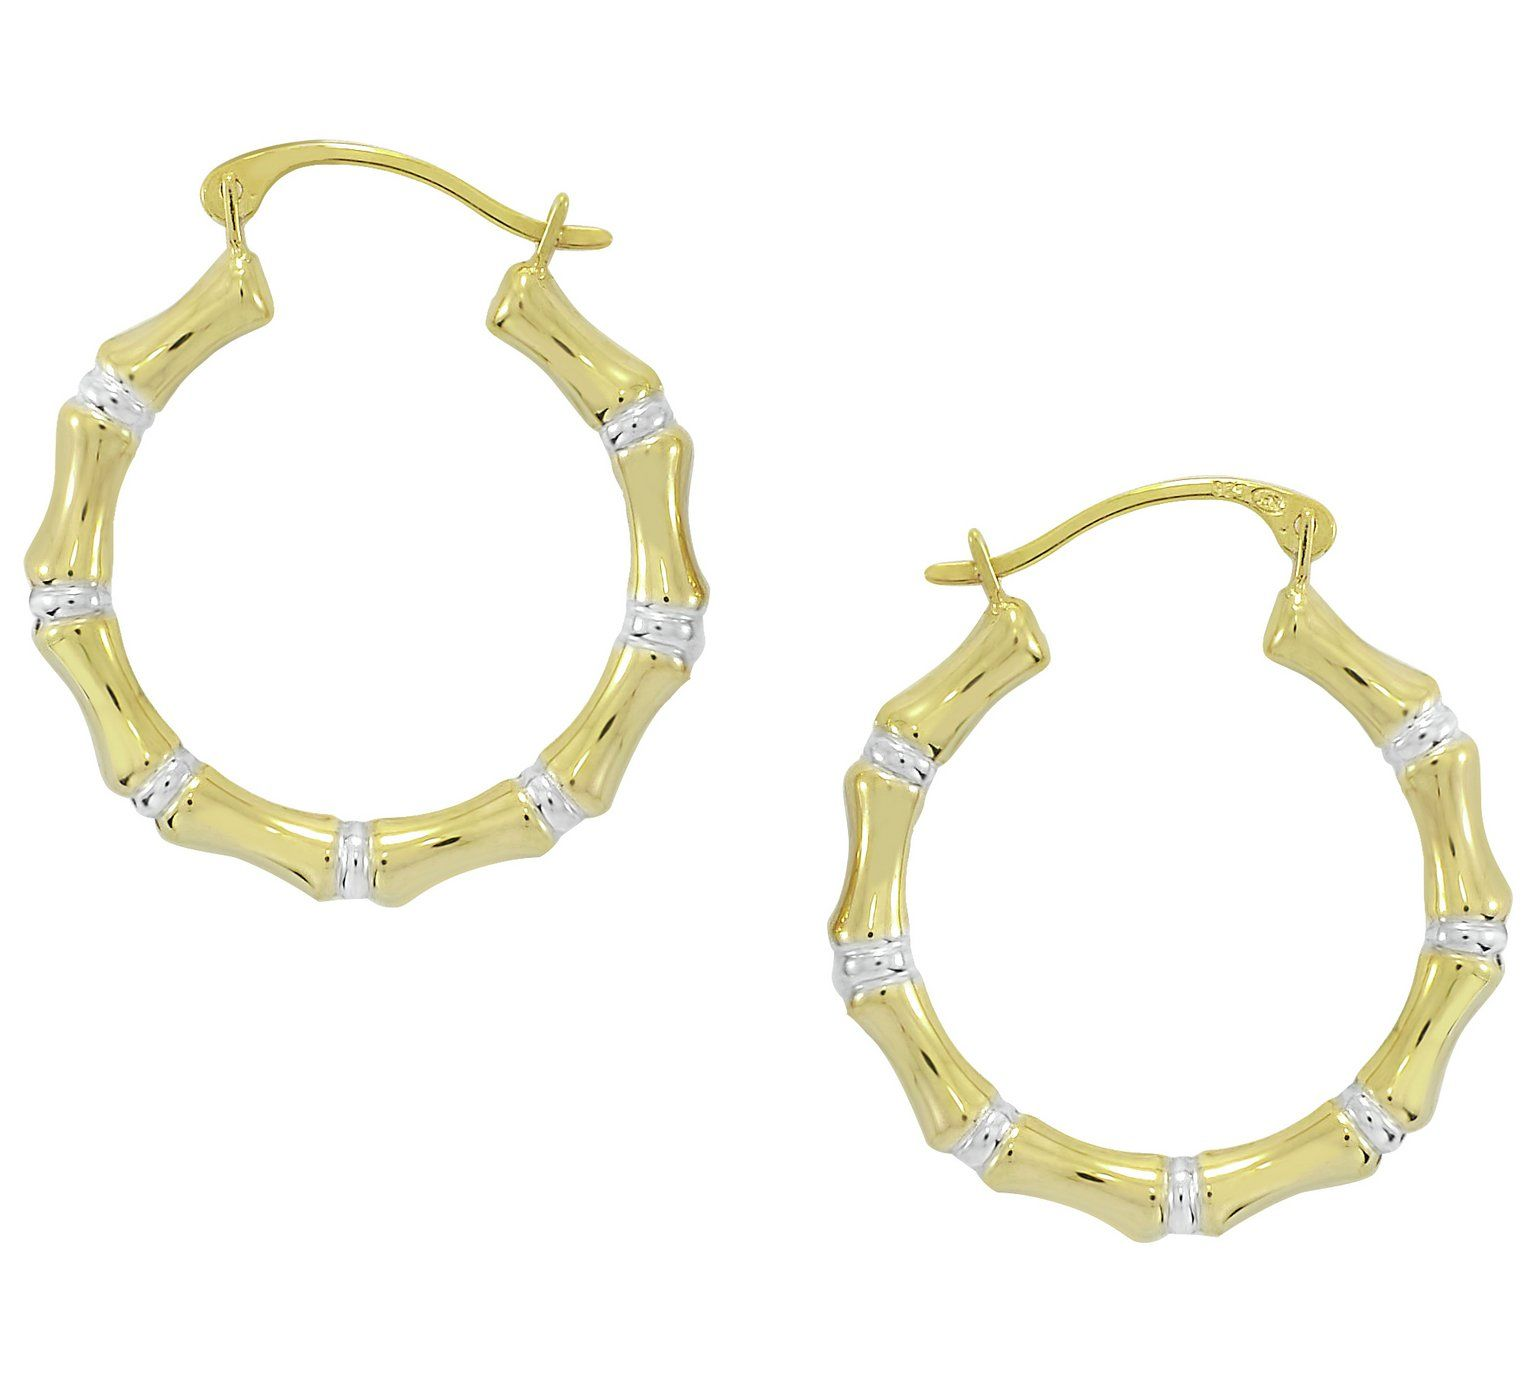 9ct Gold Two Tone Bamboo Hoop Earrings At Argos Co Uk Your